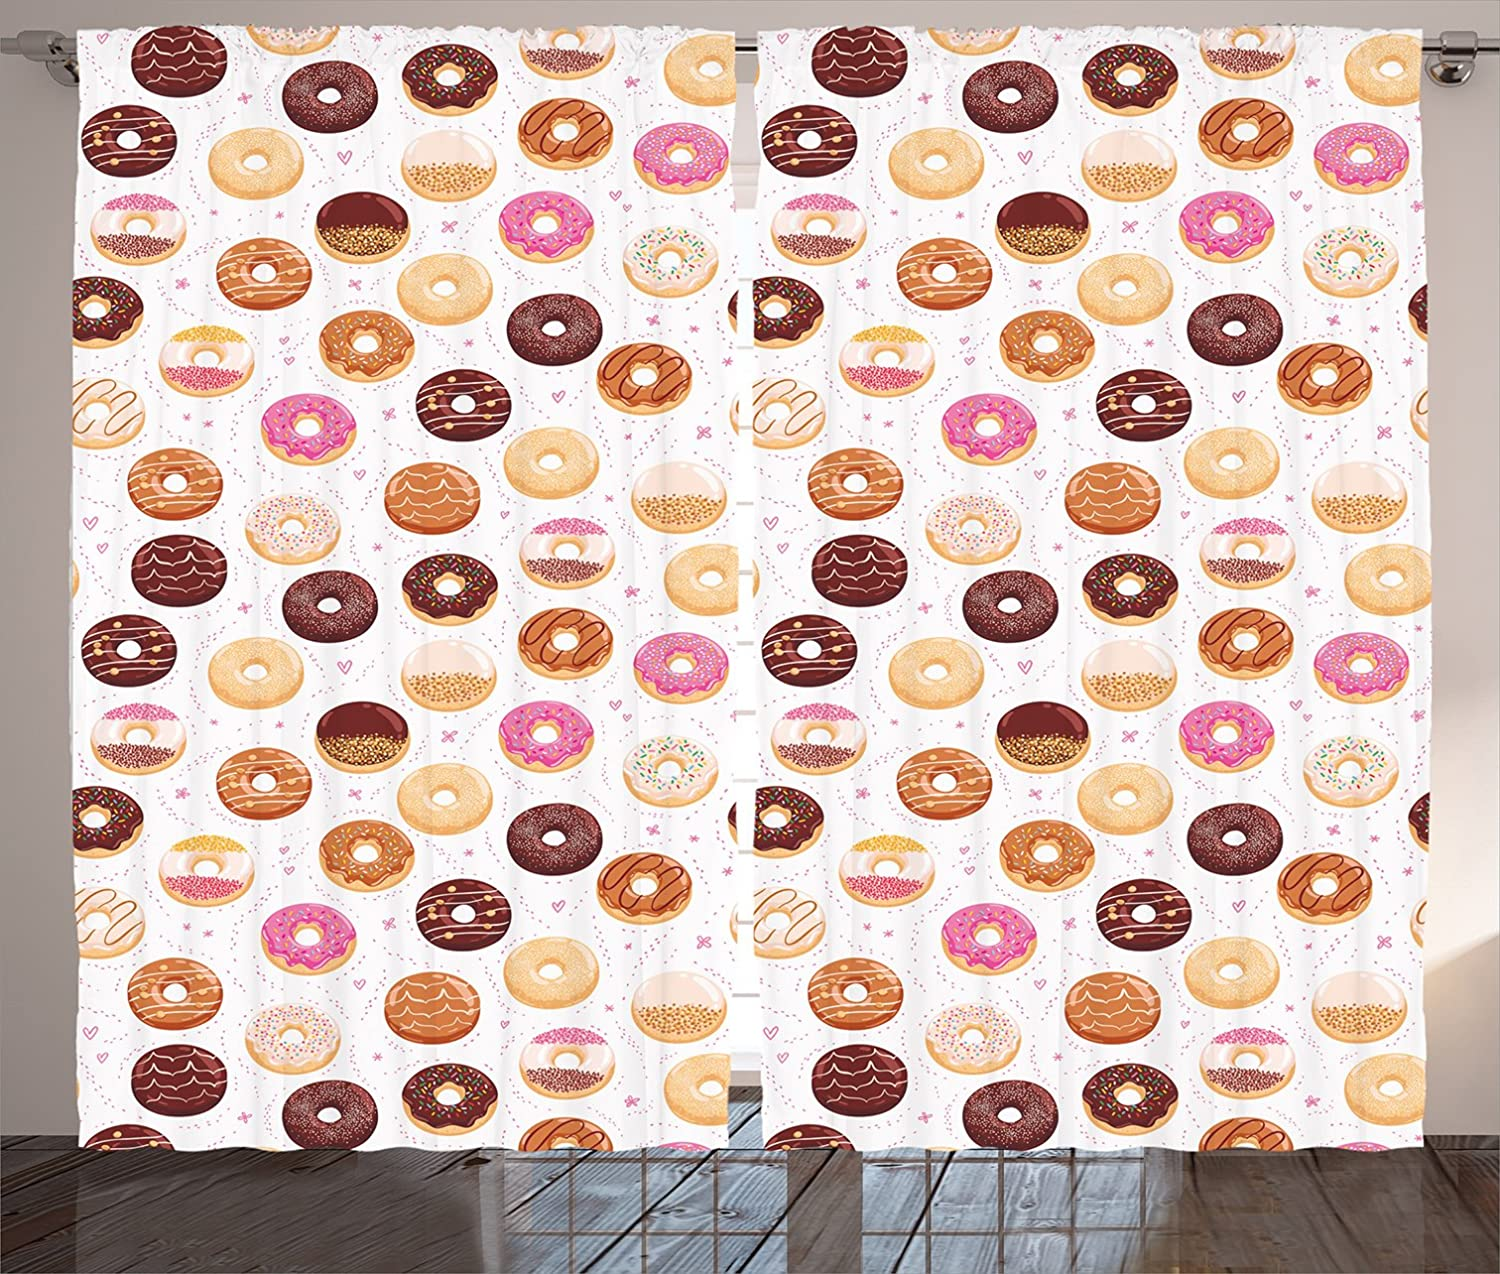 Ambesonne Food Curtains, Donuts and Little Hearts Pattern Colorful Yummy Delicious Desserts Print, Living Room Bedroom Window Drapes 2 Panel Set, 108